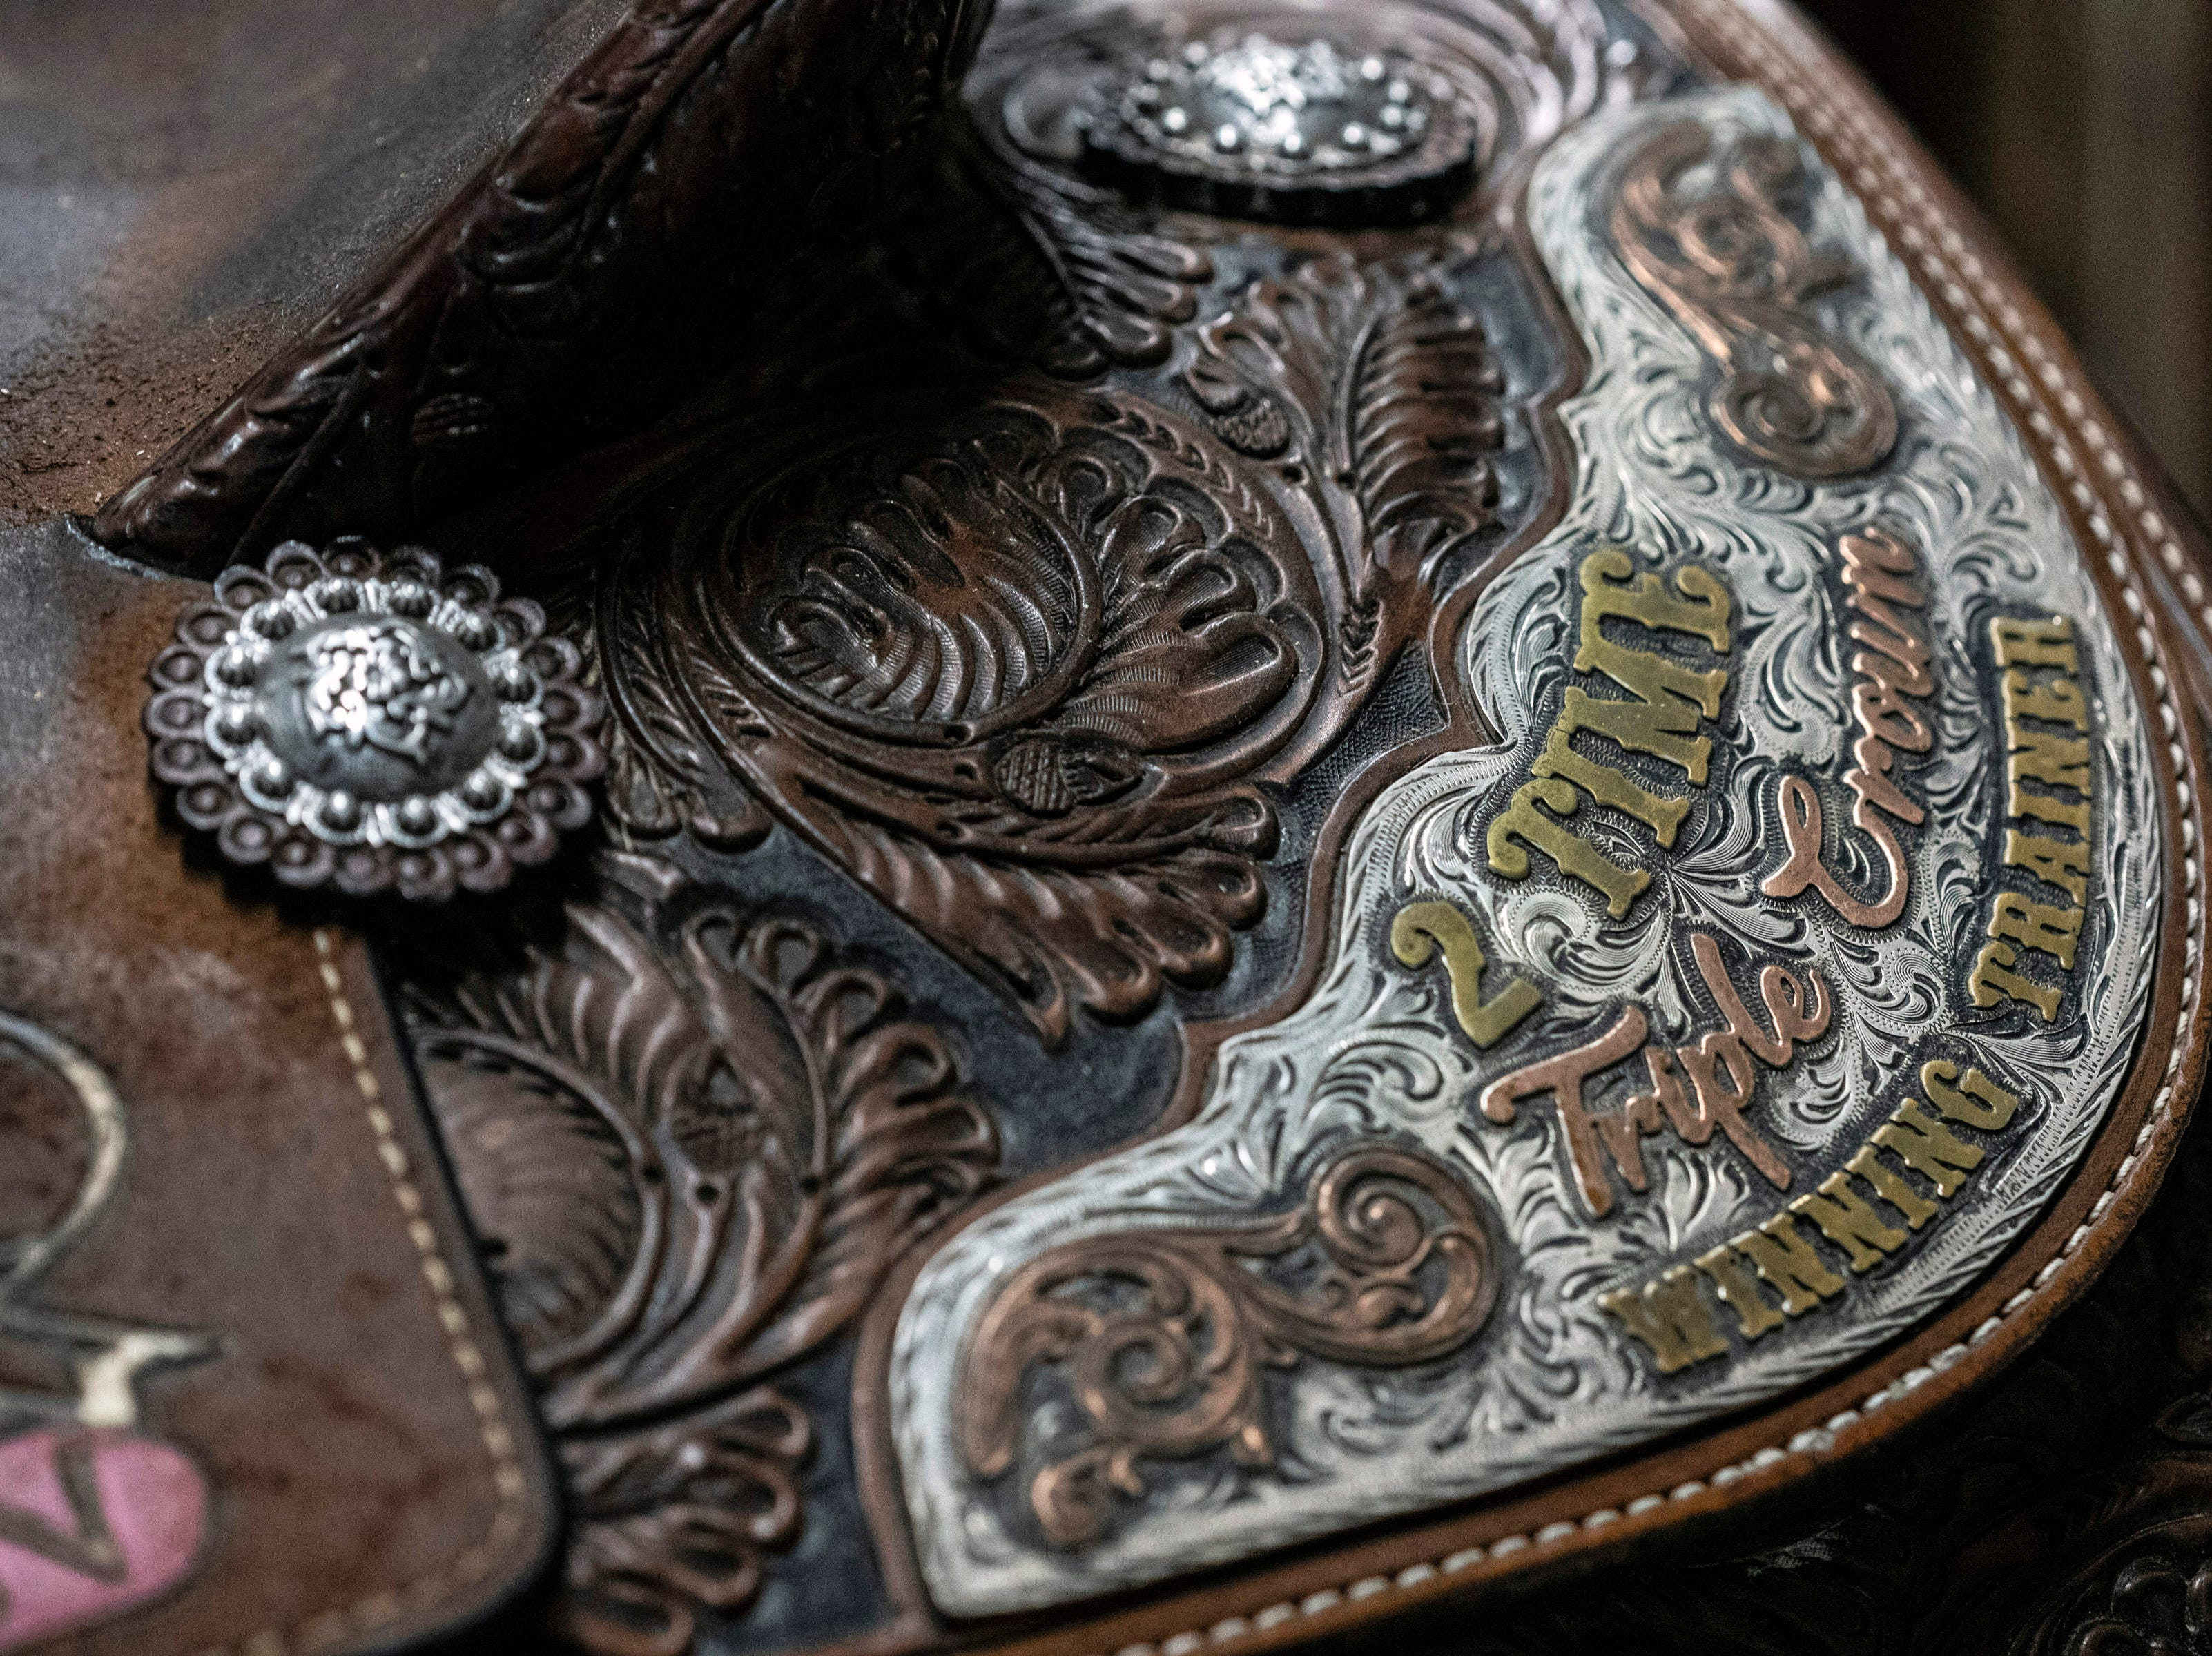 A custom, Western-style saddle gifted to Bob Baffert for his Triple Crown wins with American Pharoah and Justify is one of the latest additions to the Kentucky Derby Museum's collection. 3/26/19